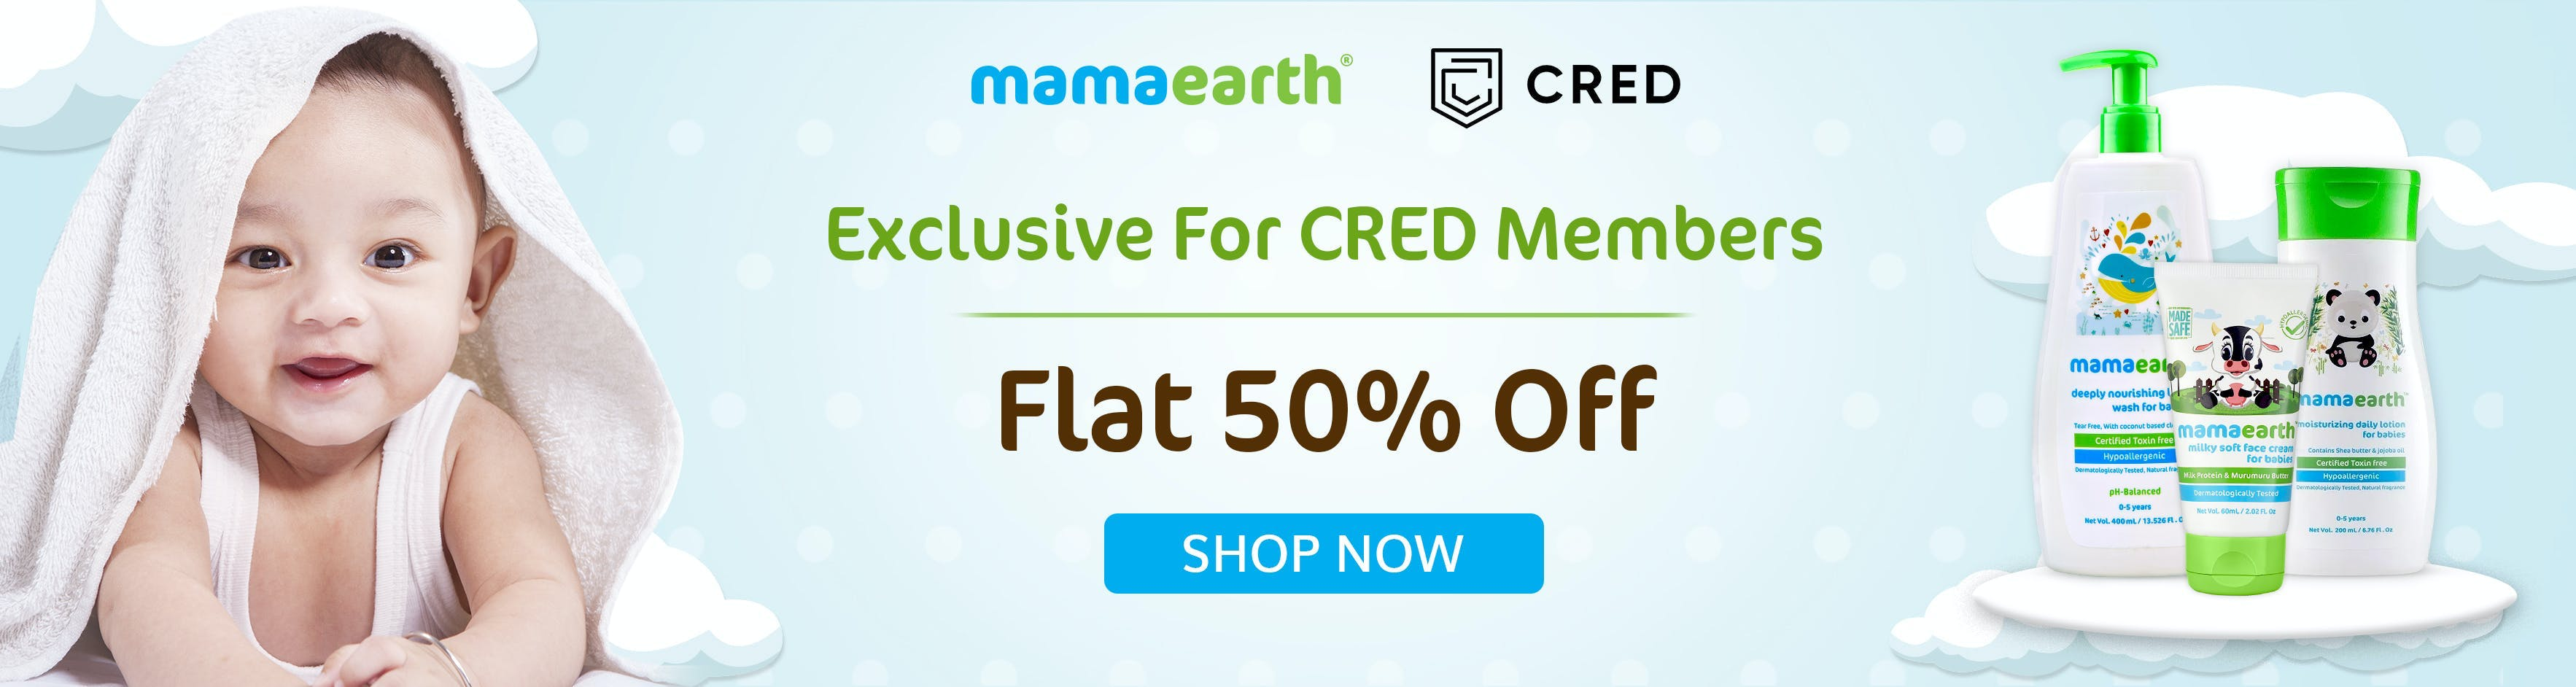 mamaearth.in - Flat 50% OFF on Baby Care